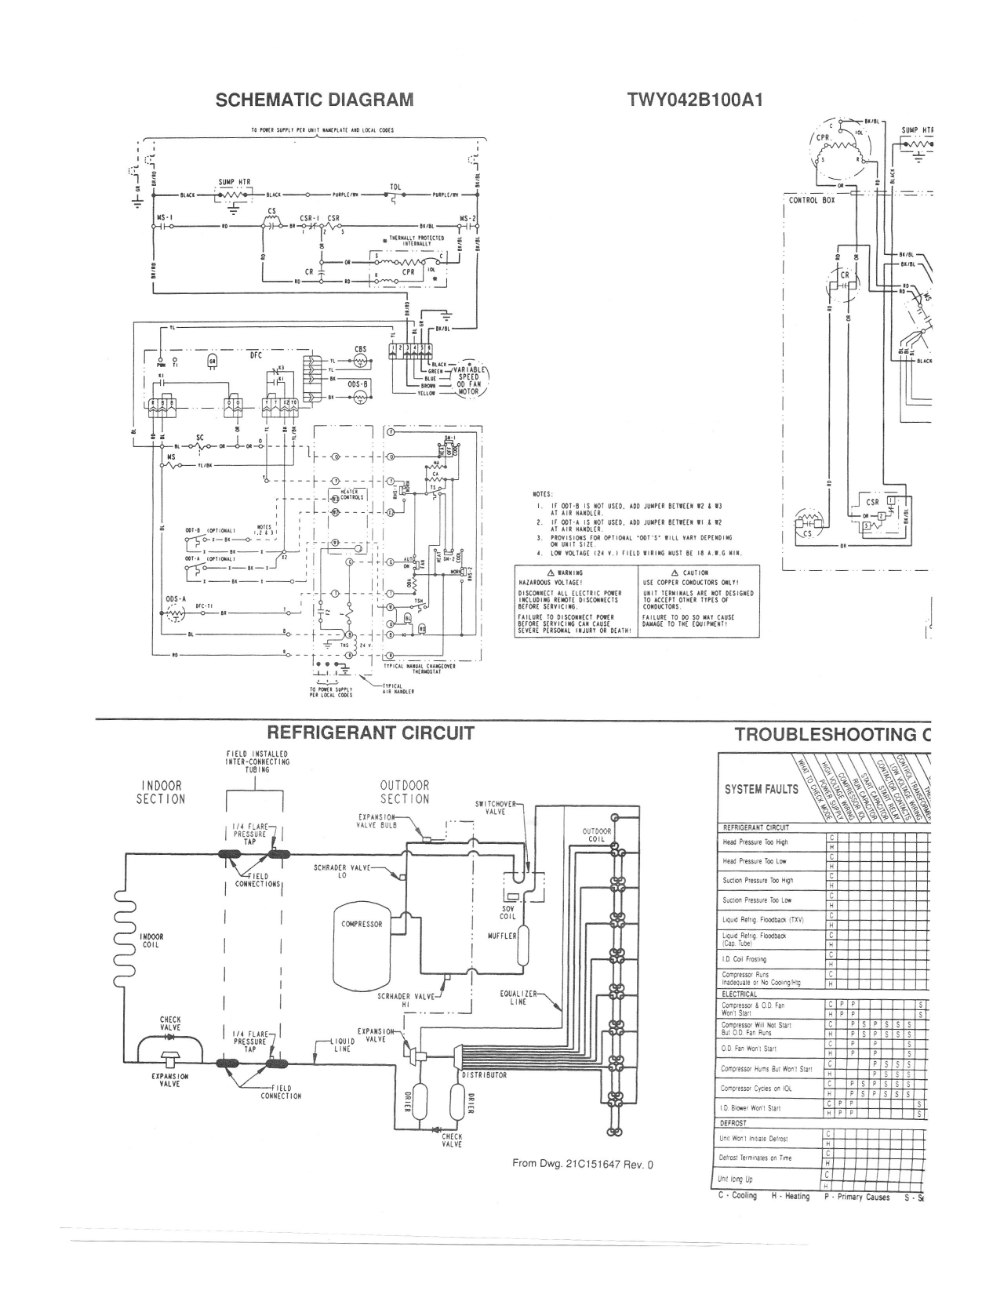 Wiring Diagram Trane Gas Furnace from i.pinimg.com